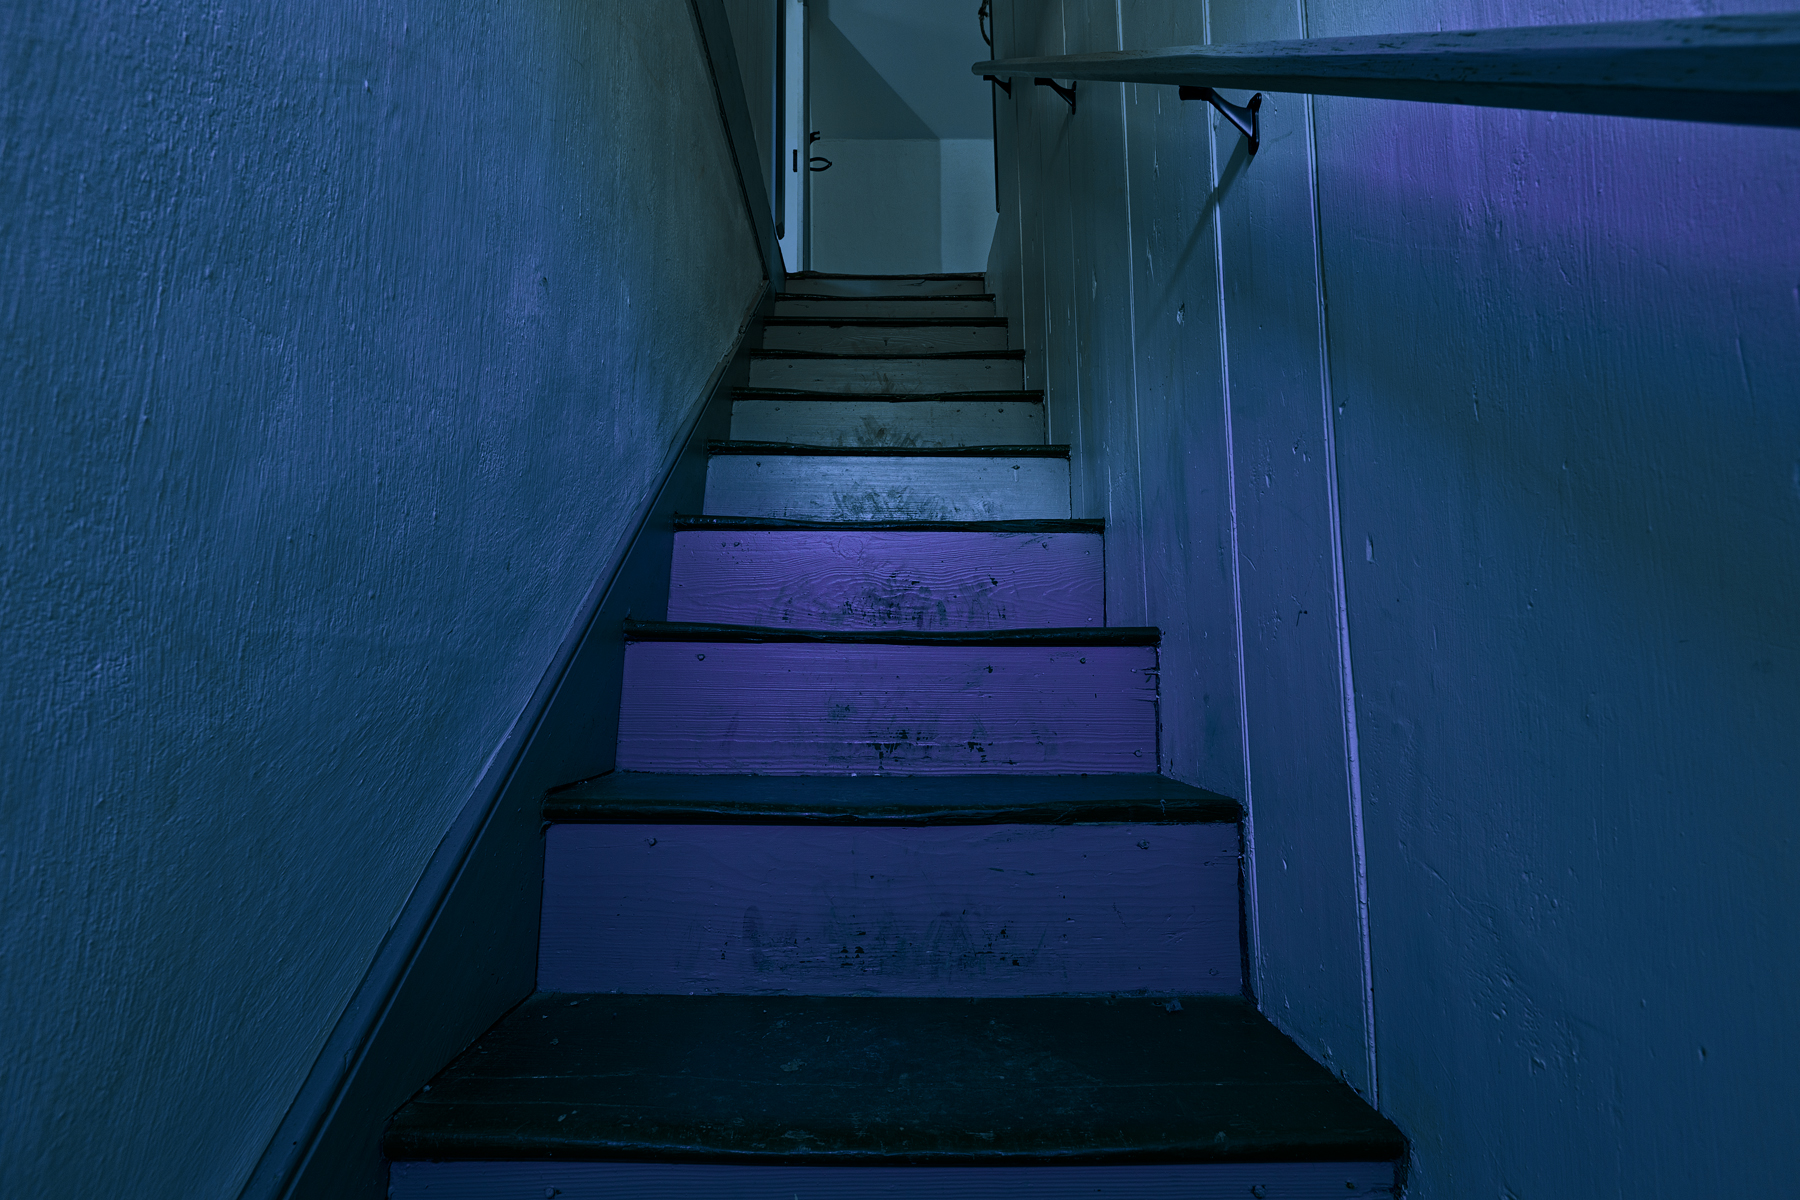 Gloomy lockhouse staircase - hdr photo